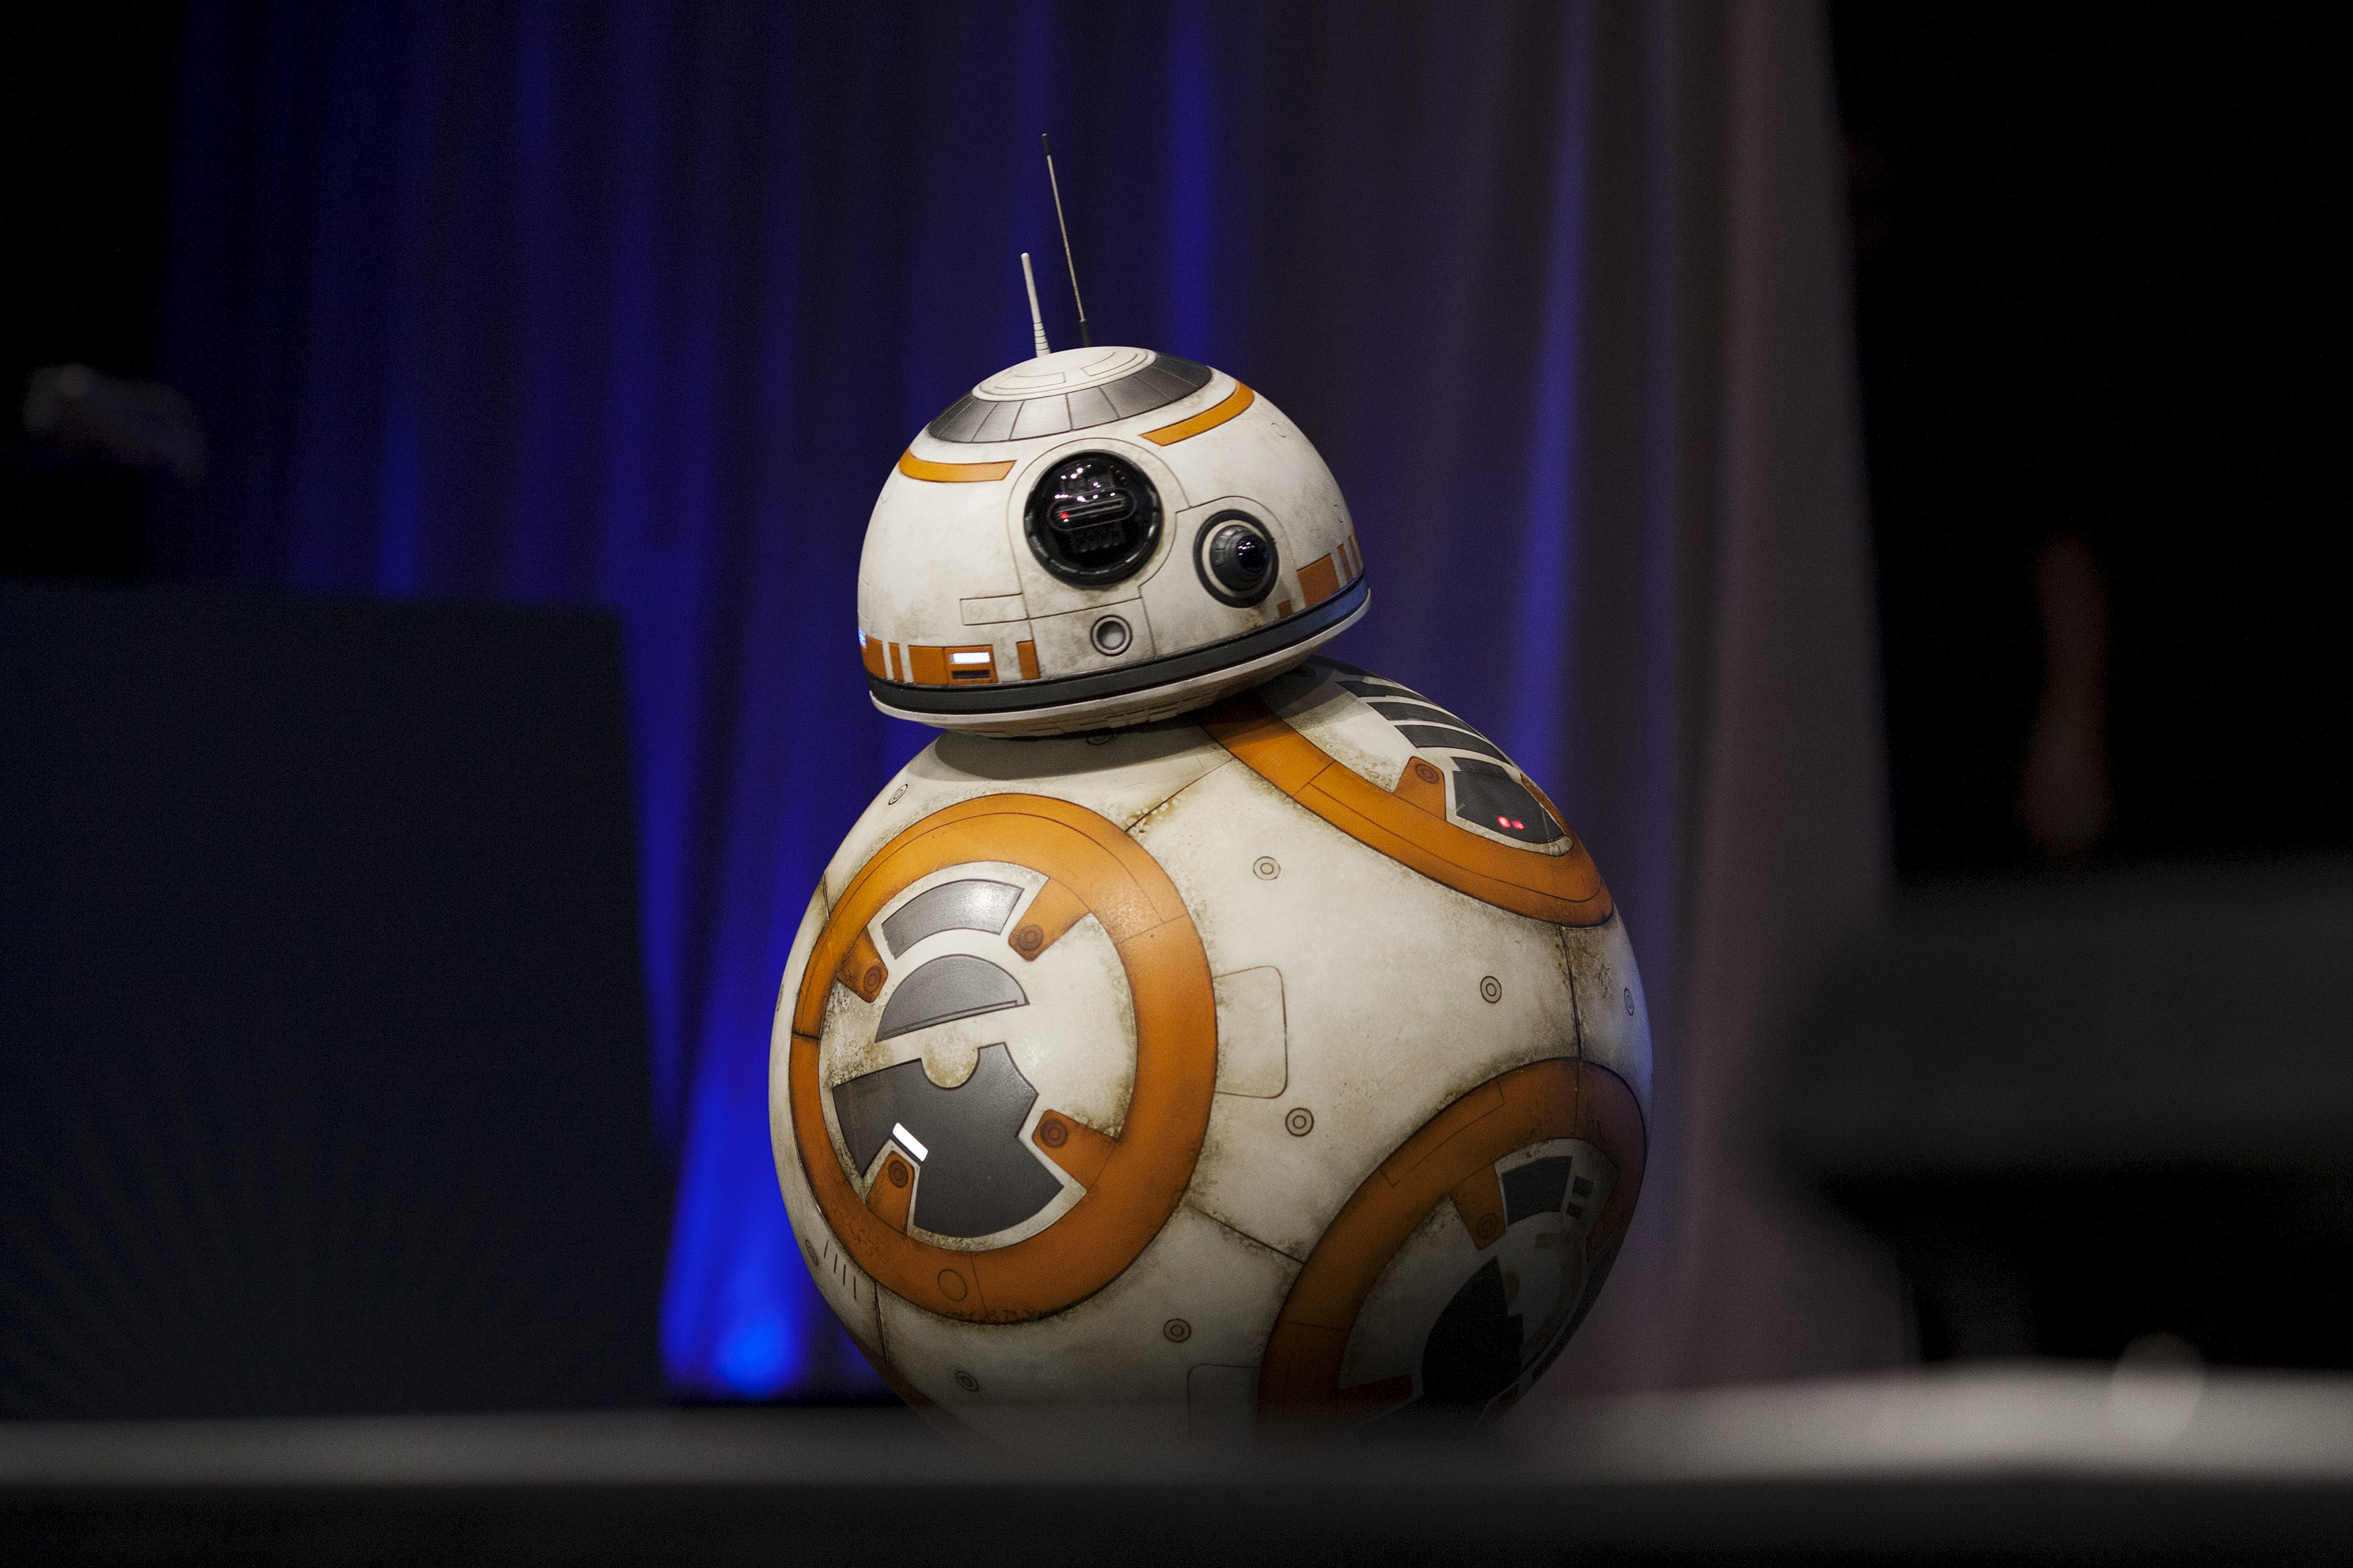 bb8 wallpaper hd - photo #7